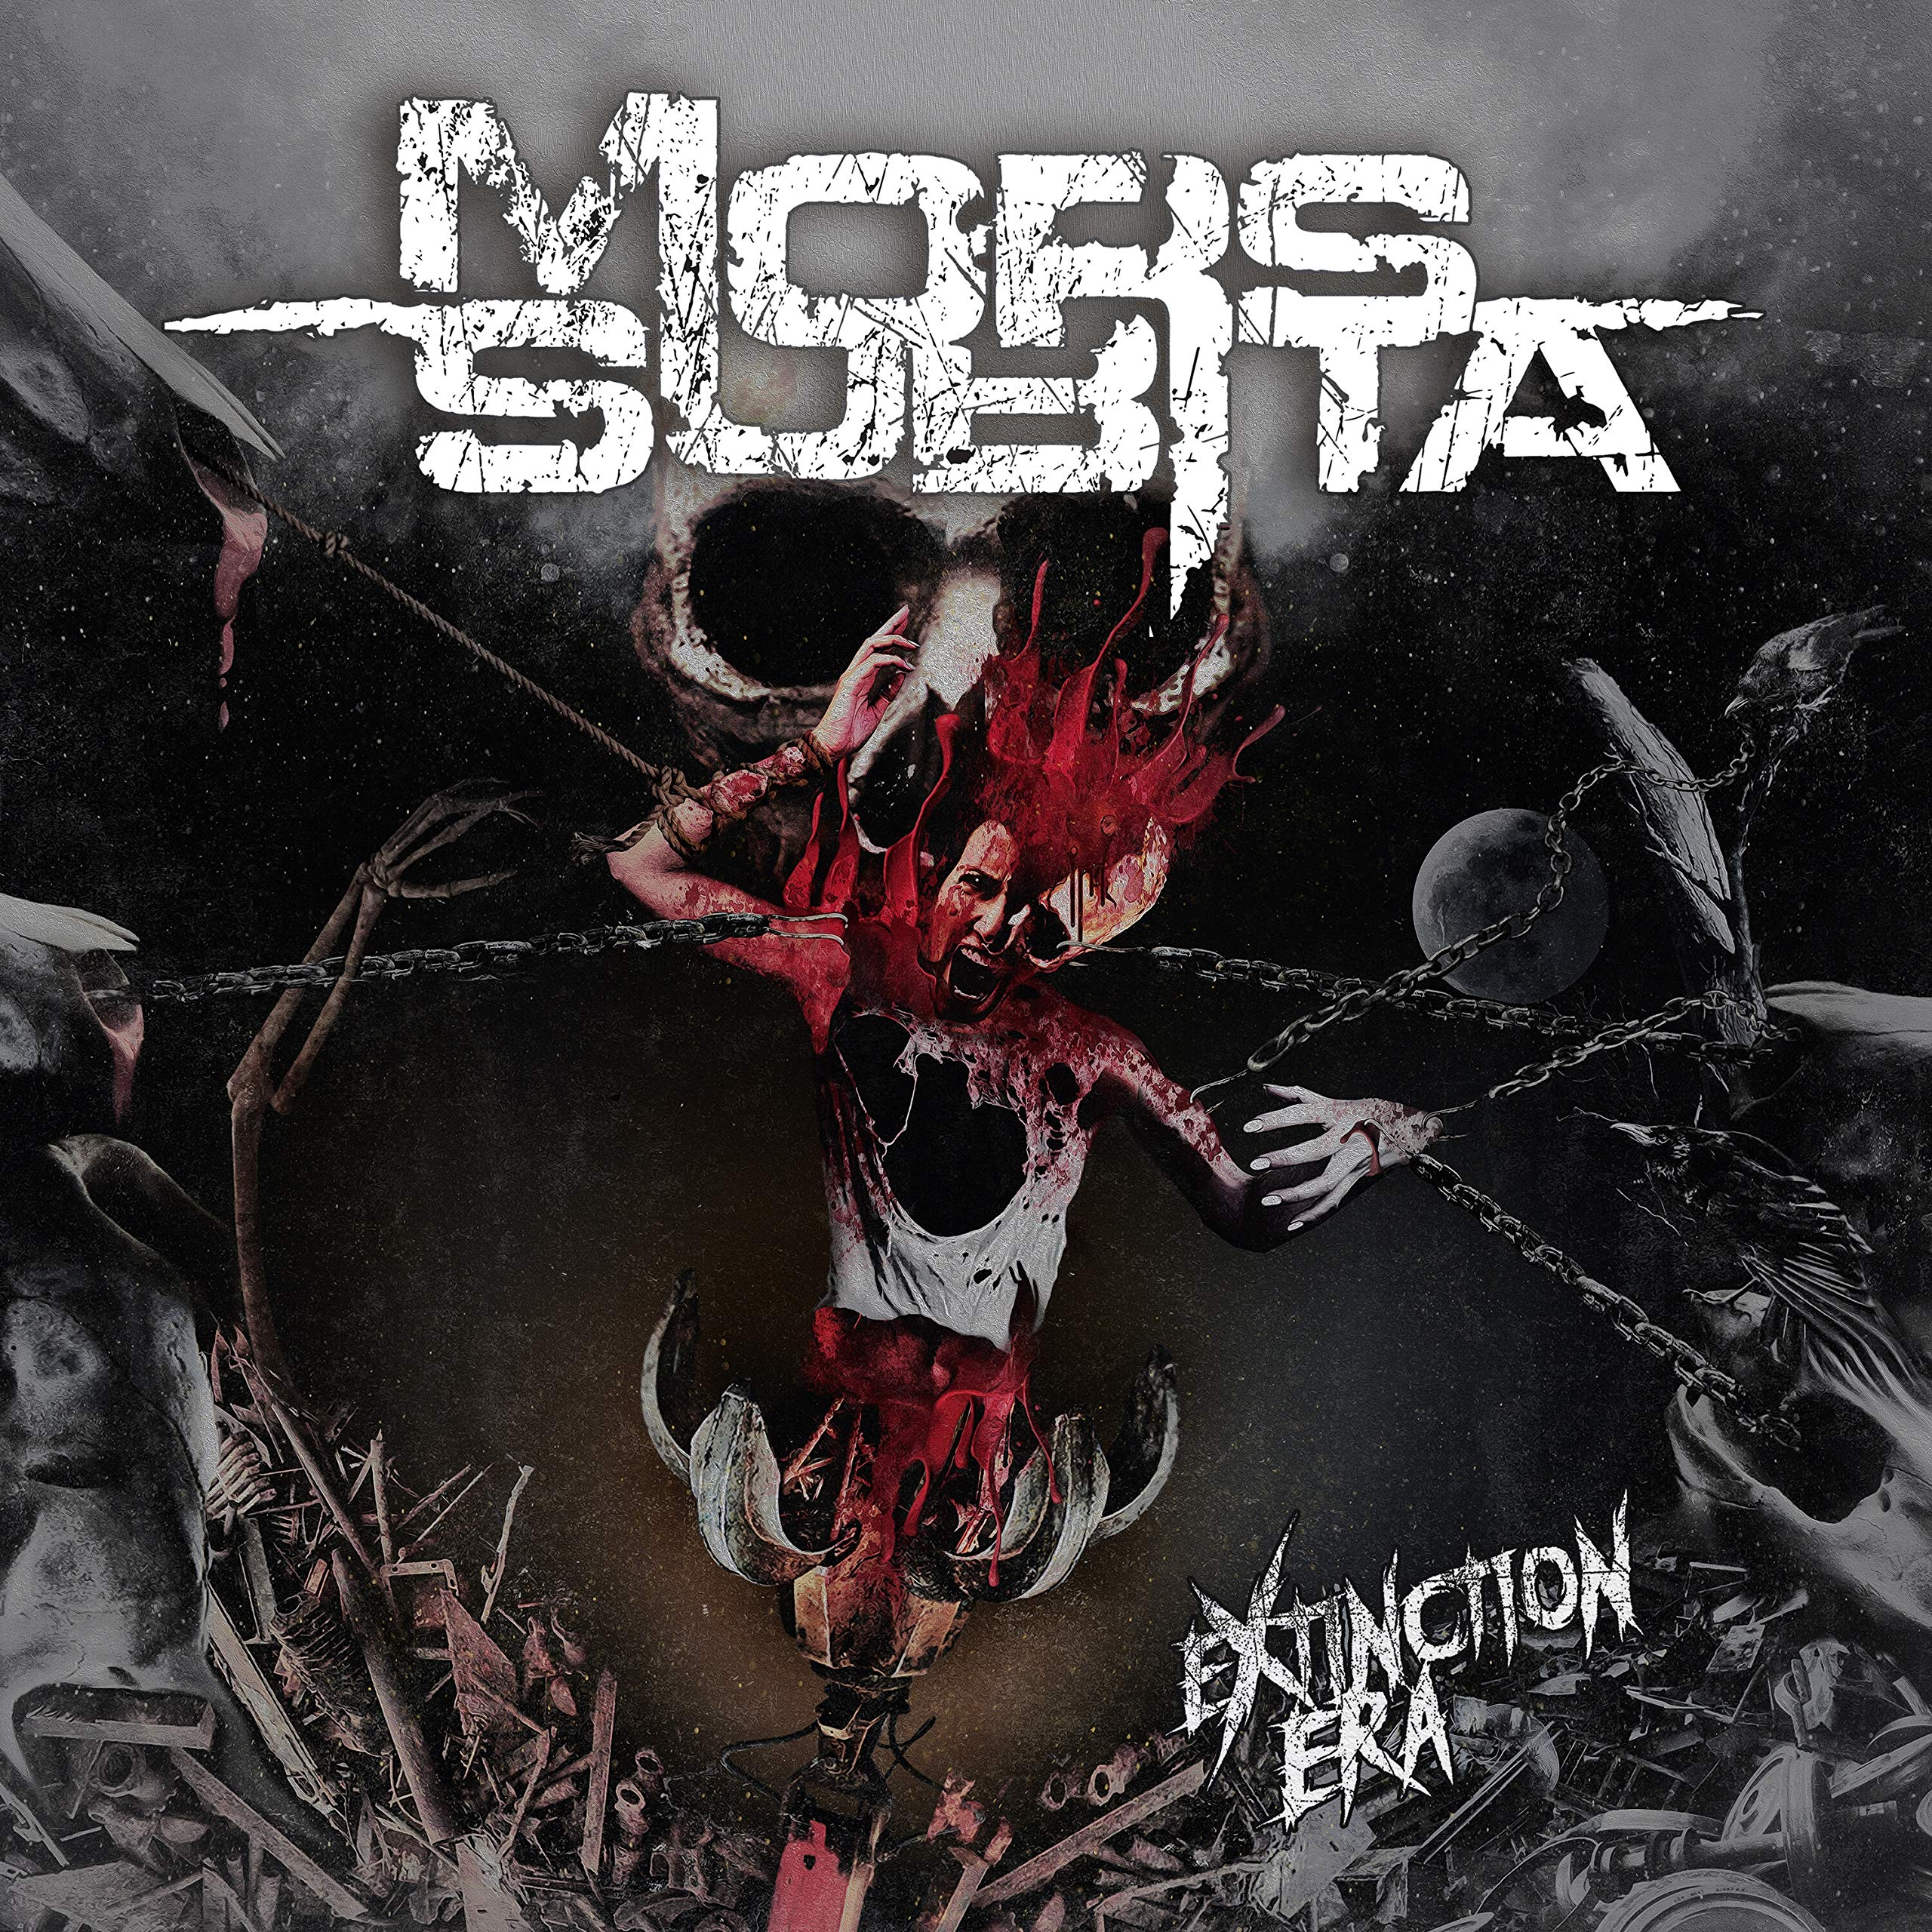 Mors Subita - Extinction Era (2020) [FLAC] Download